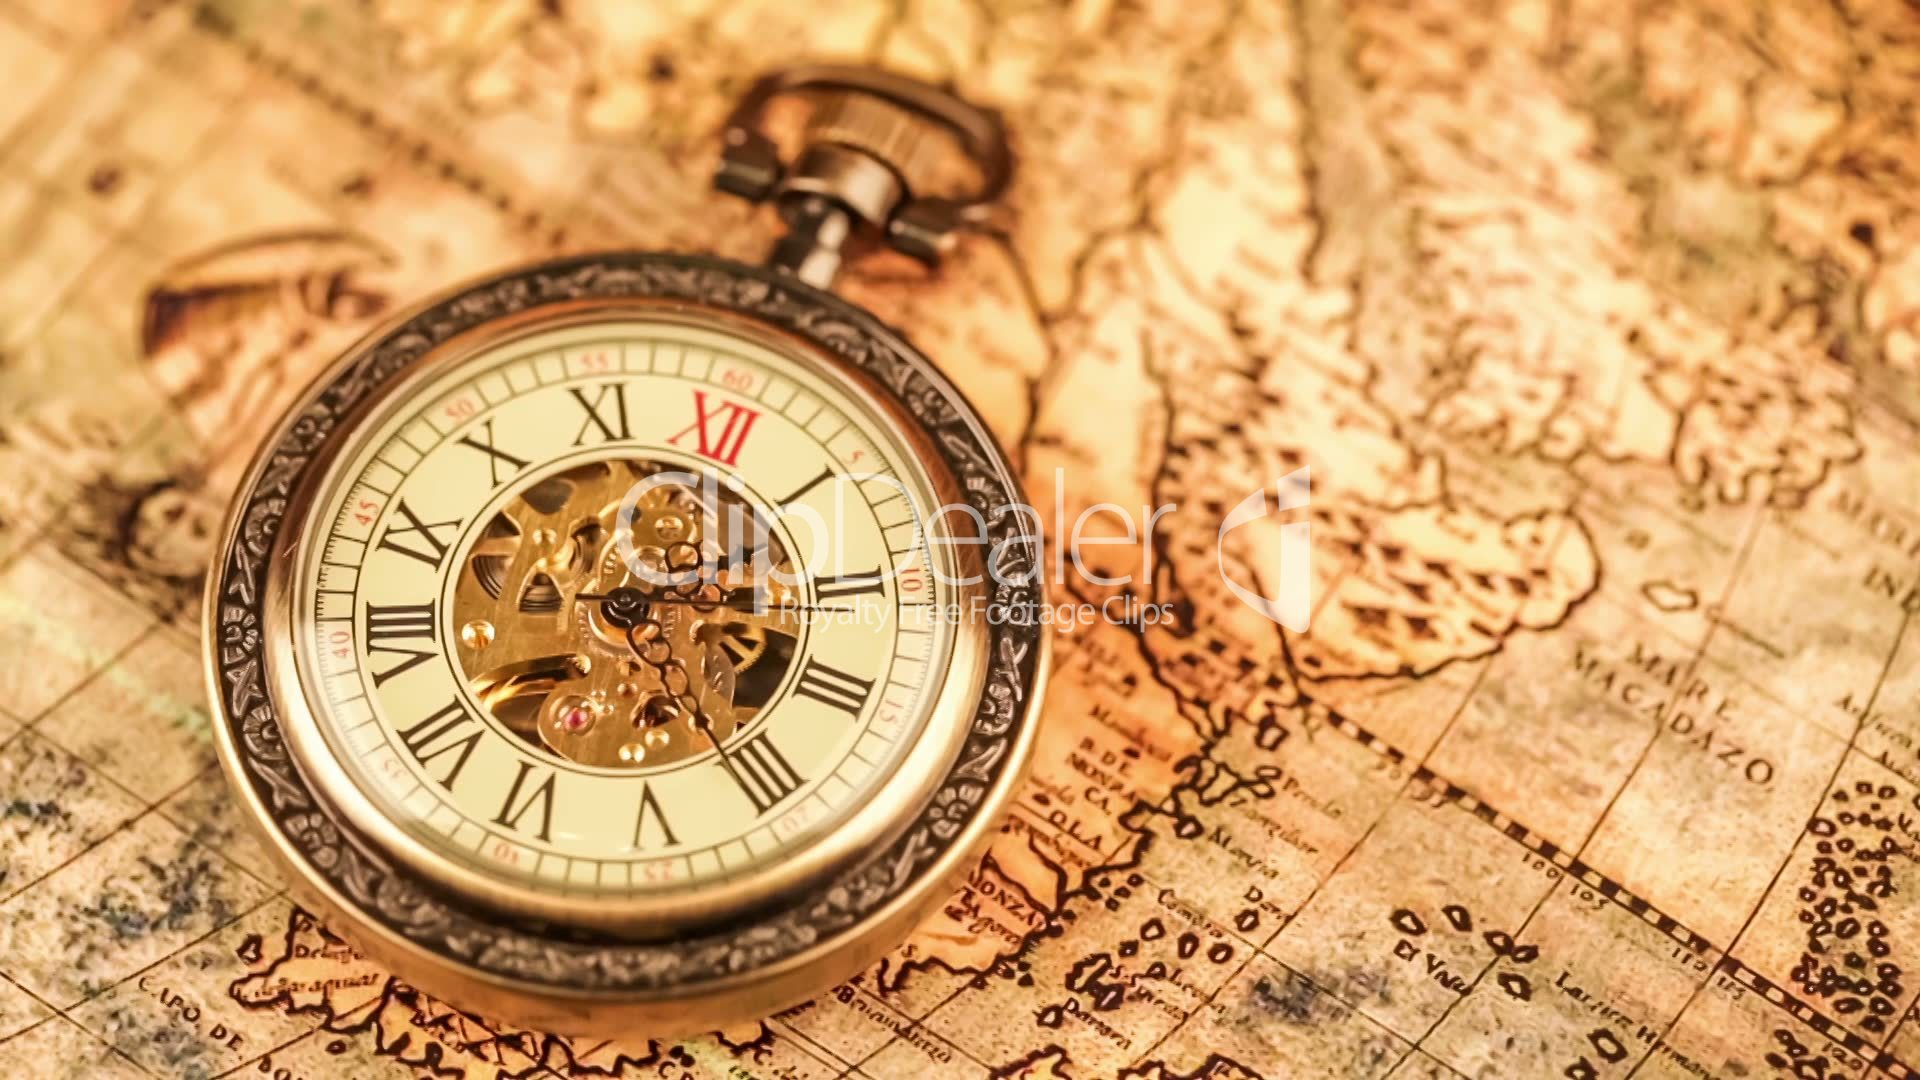 Vintage antique pocket watch on ancient world map in 1565 vdeos videos libres de derechos gumiabroncs Images